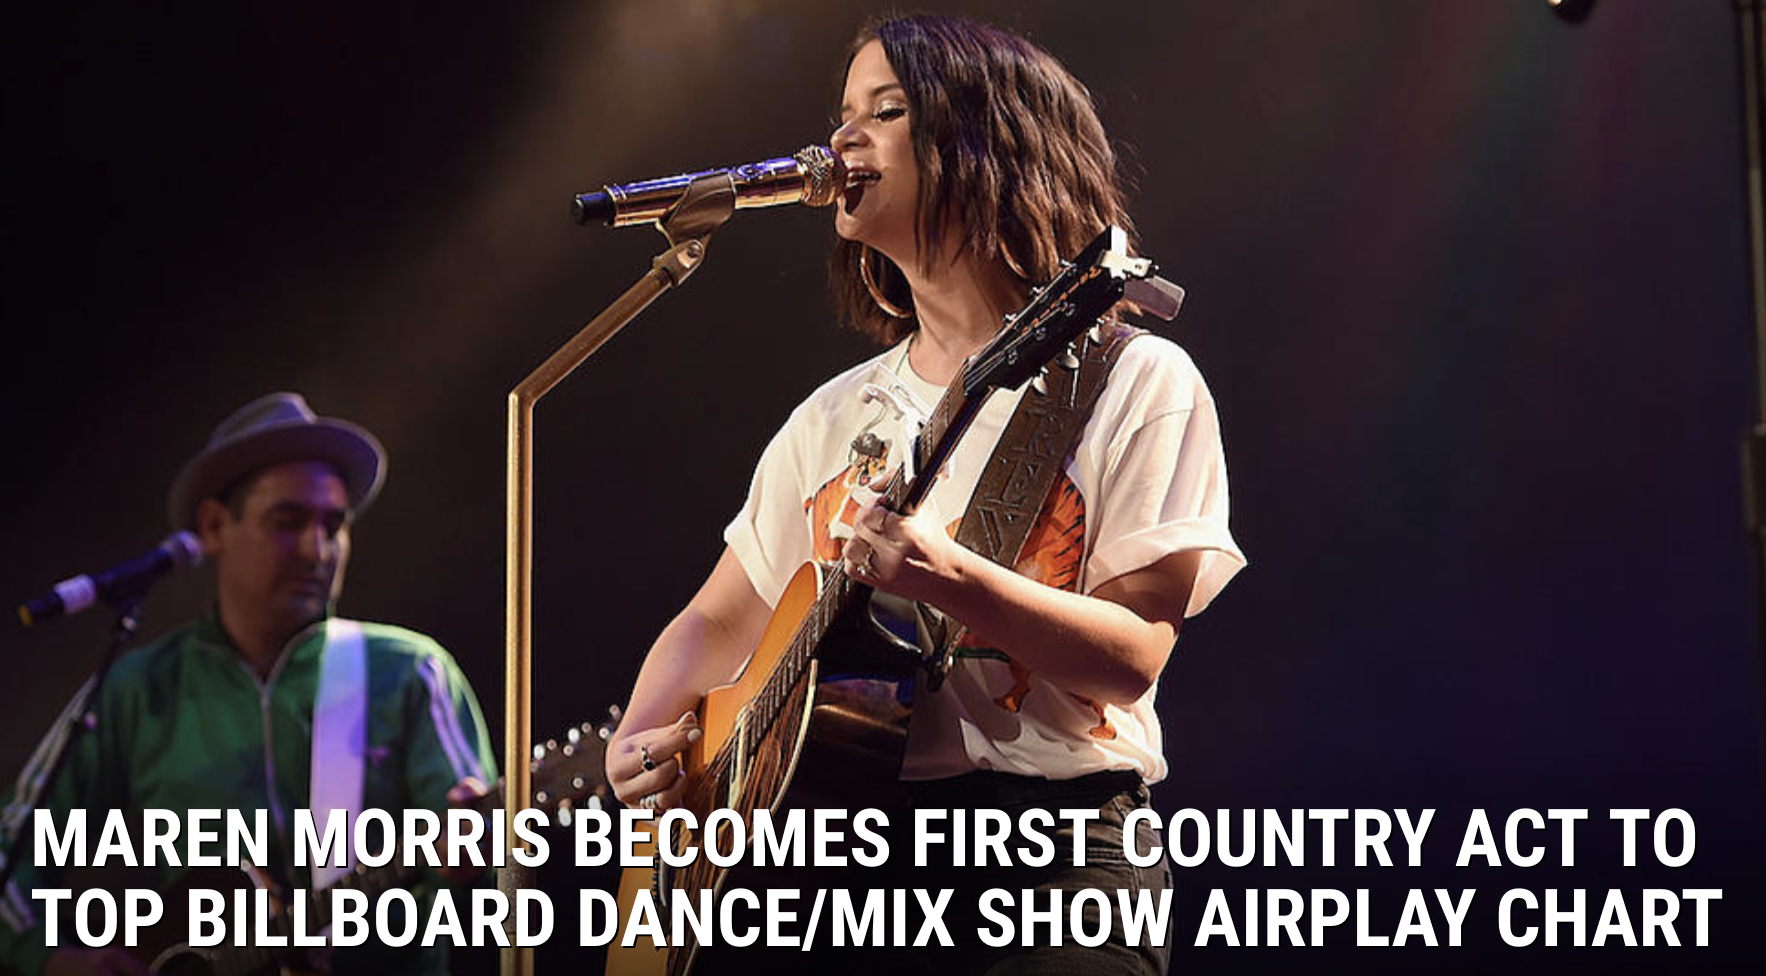 Maren Morris Becomes First Country Act To Top Billboard